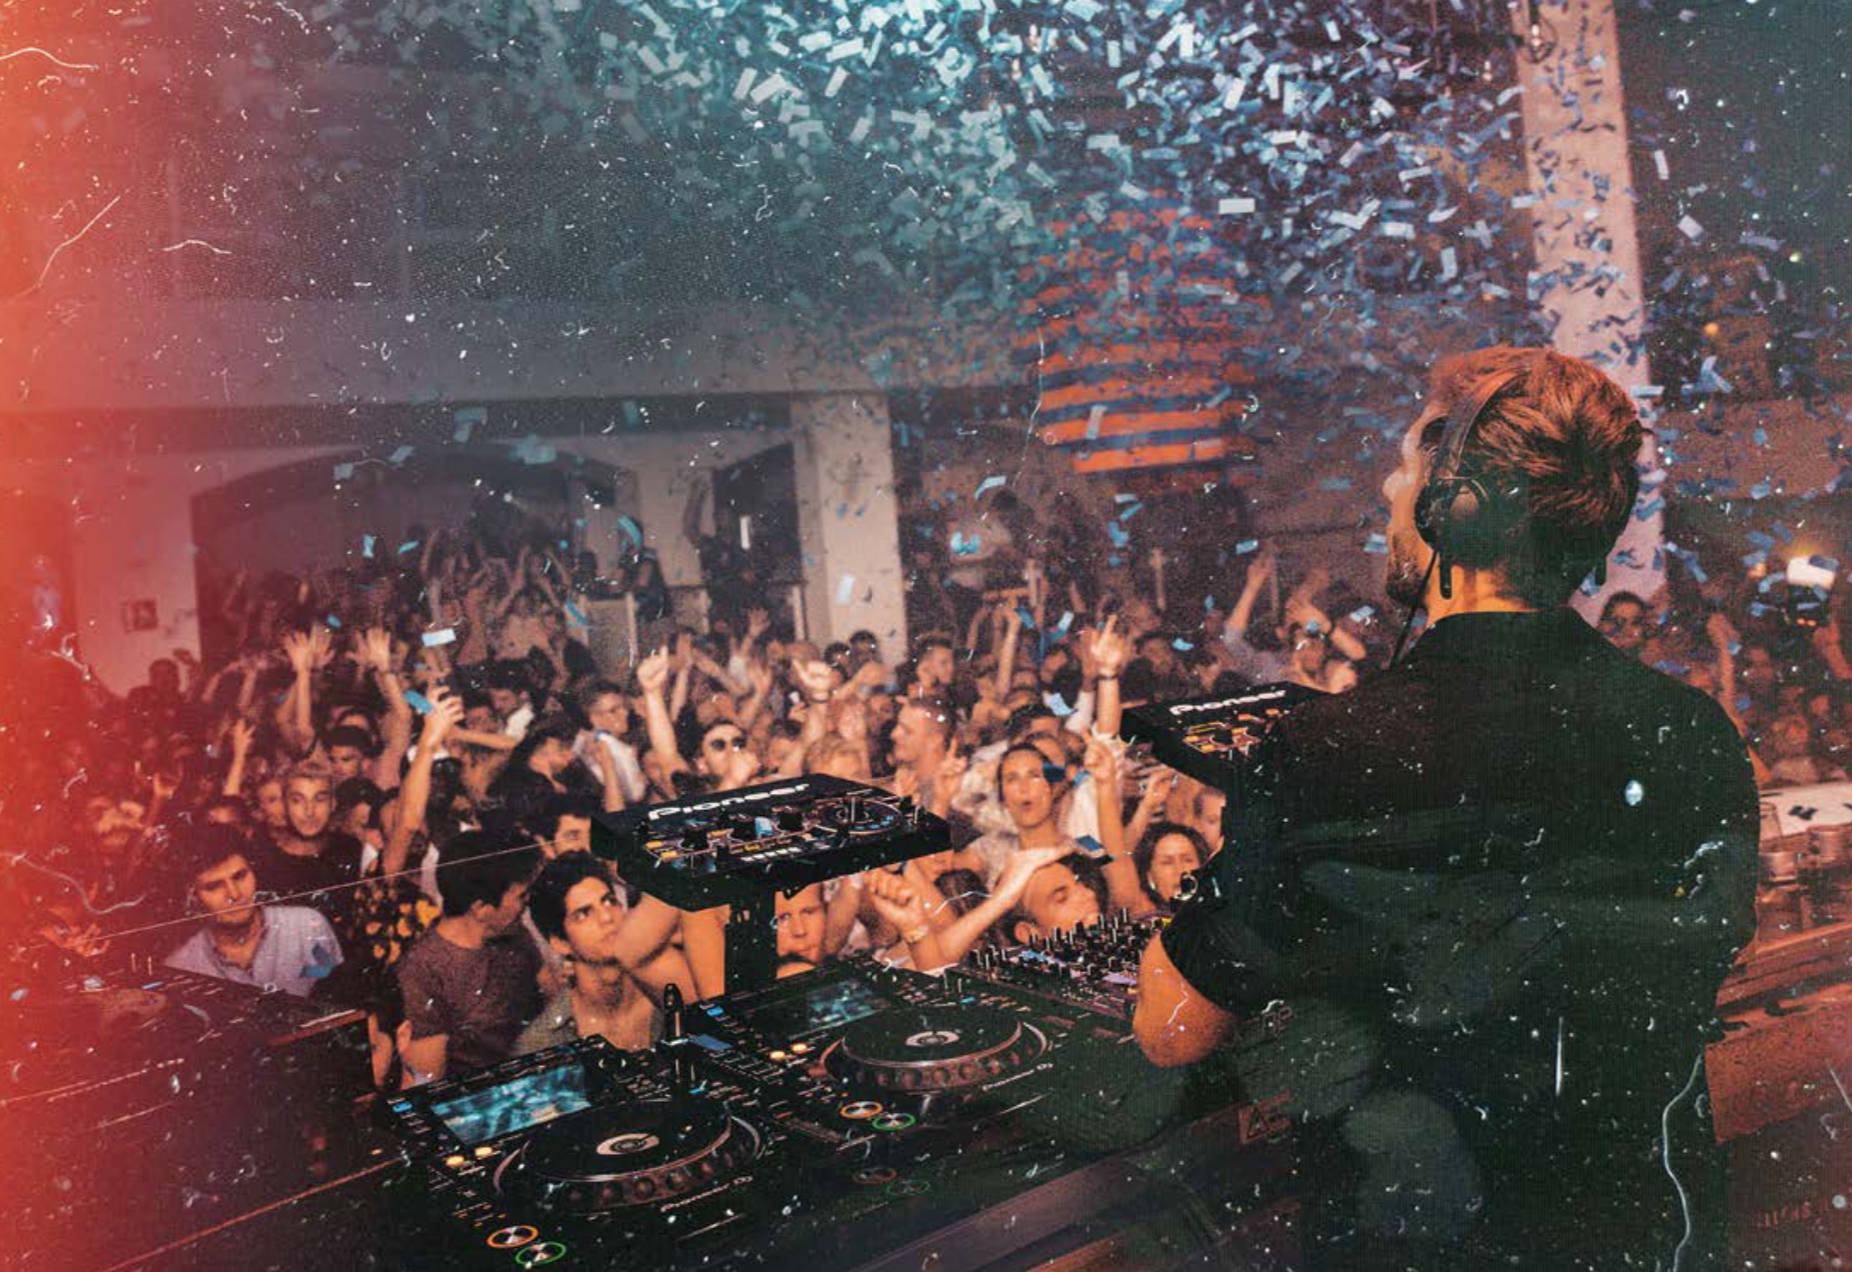 Hot Since 82 on creativity, tragedy and Labyrinth's return to Pacha